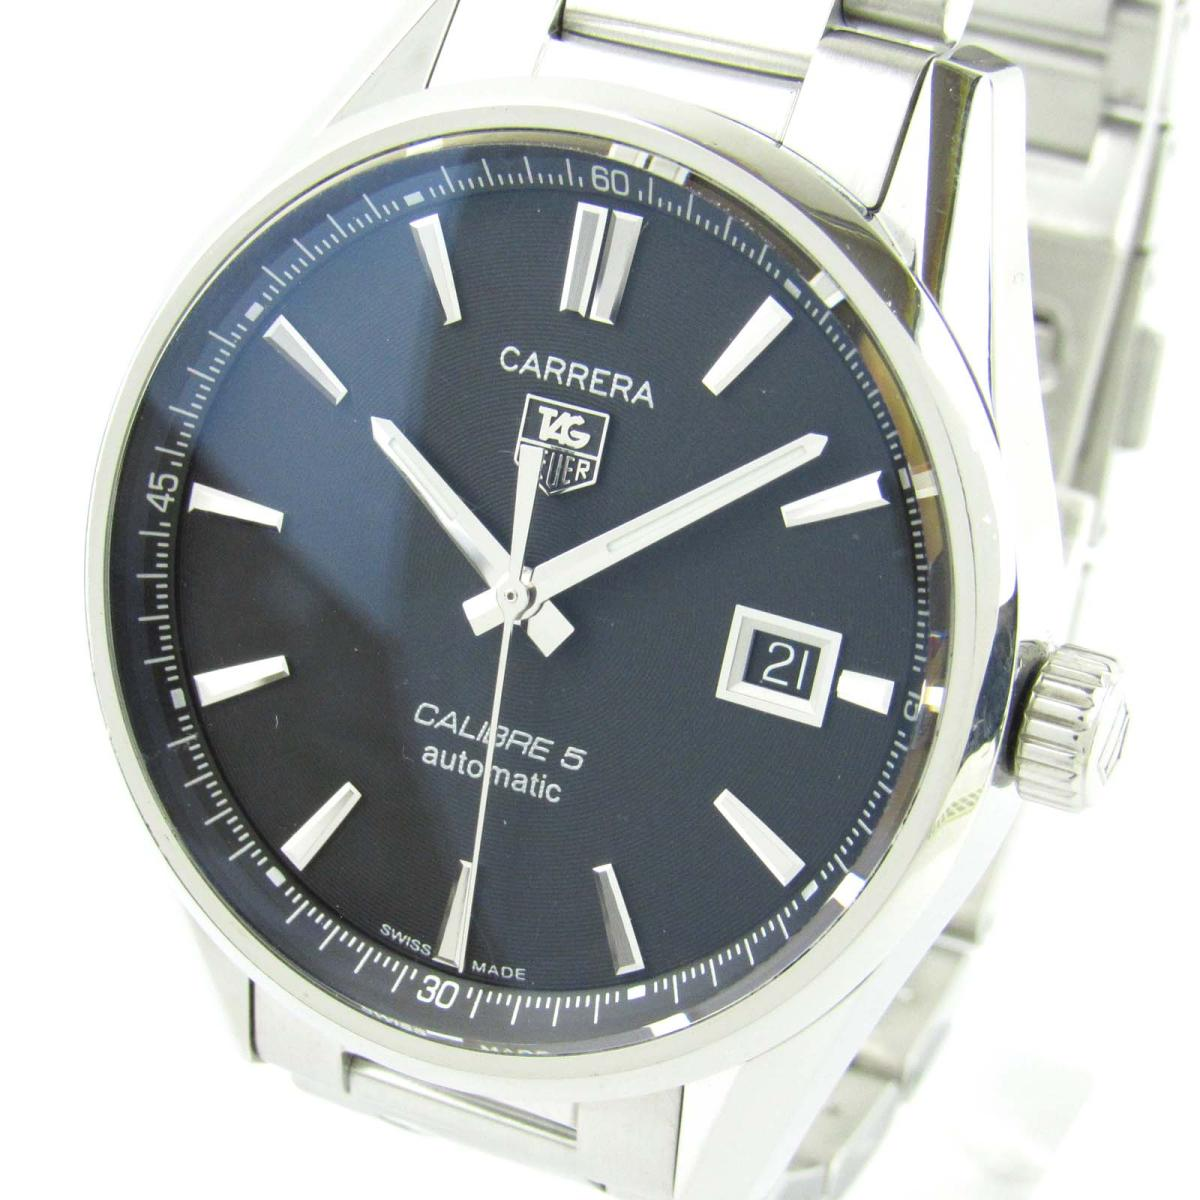 Tag Carrera Watch >> Auth Tag Heuer Carrera Watch War 211 A Automatic Stainless Steel Ss Used Brandoff Ginza Tokyo Japan